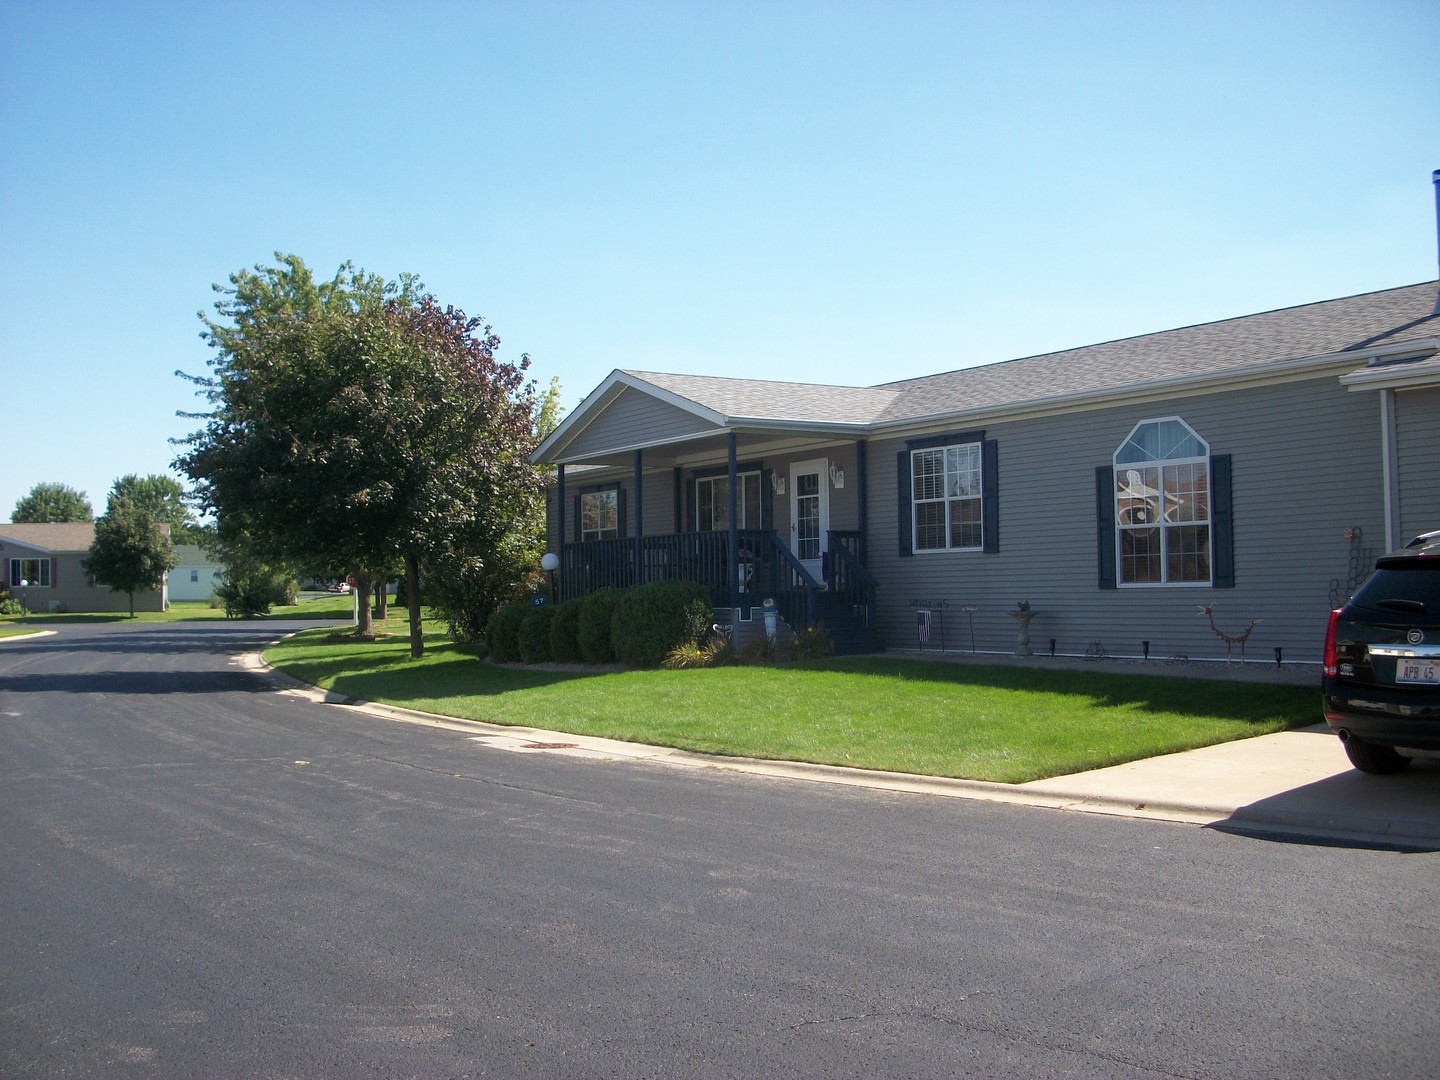 Mobile Homes for sale in Sandwich, Illinois | Sandwich MLS ... on cars in illinois, brand new homes in illinois, house in illinois, single family homes in illinois, women seeking men in illinois, manufactured homes in illinois, luxury homes in illinois, home builders in illinois, new mobile homes in illinois, mansions in illinois, foreclosed homes in illinois, places of interest in illinois, rent to own homes in illinois, lofts for rent in illinois, land in illinois, duplexes in illinois,